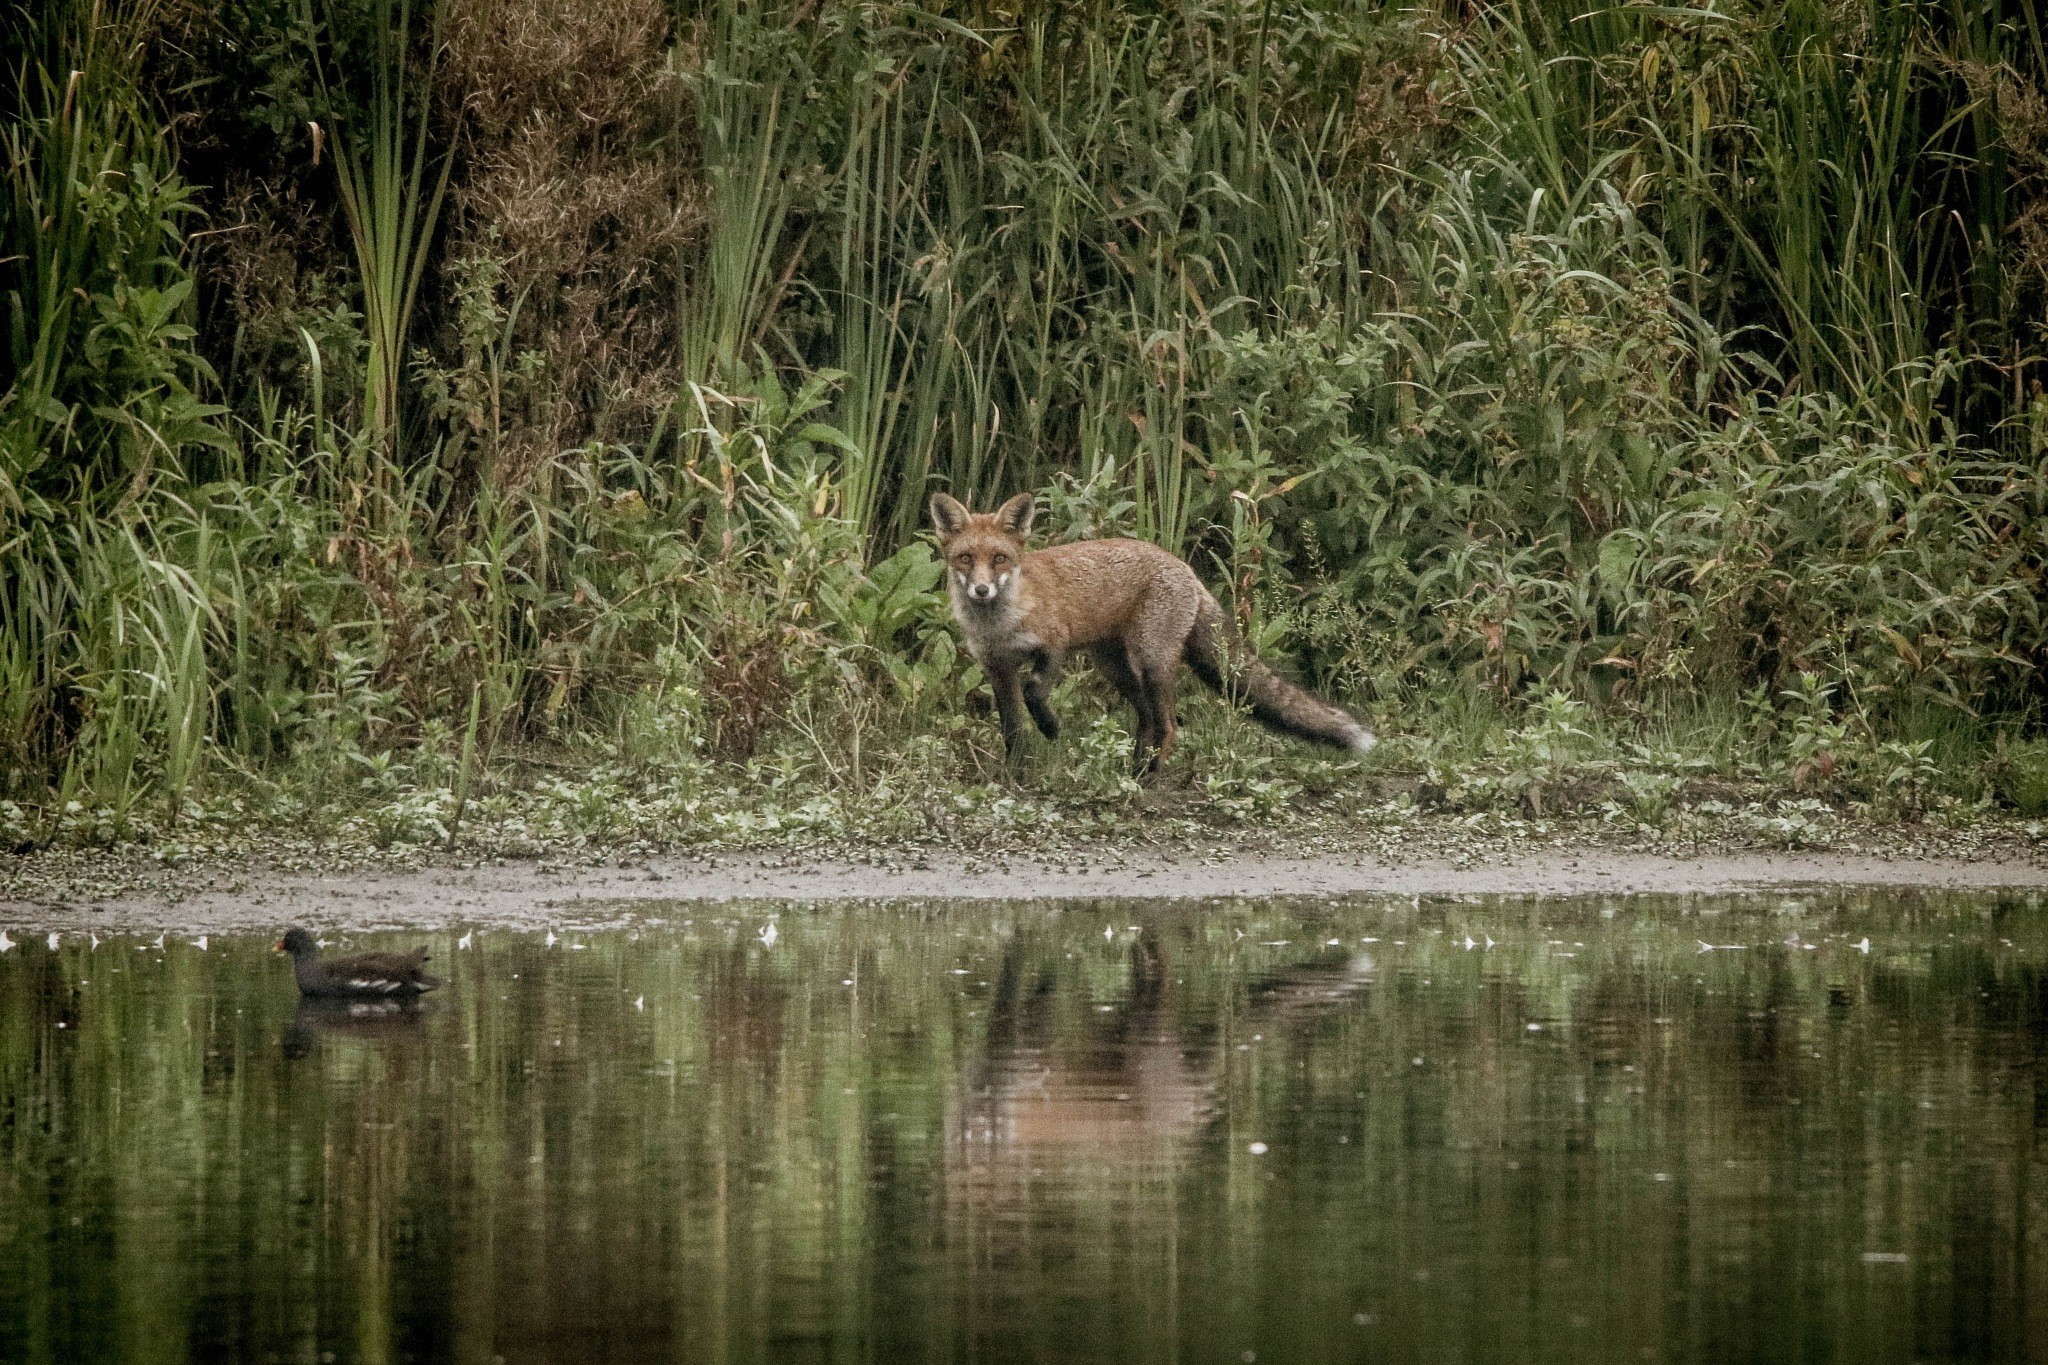 The Fox and Coot by Martin Roper